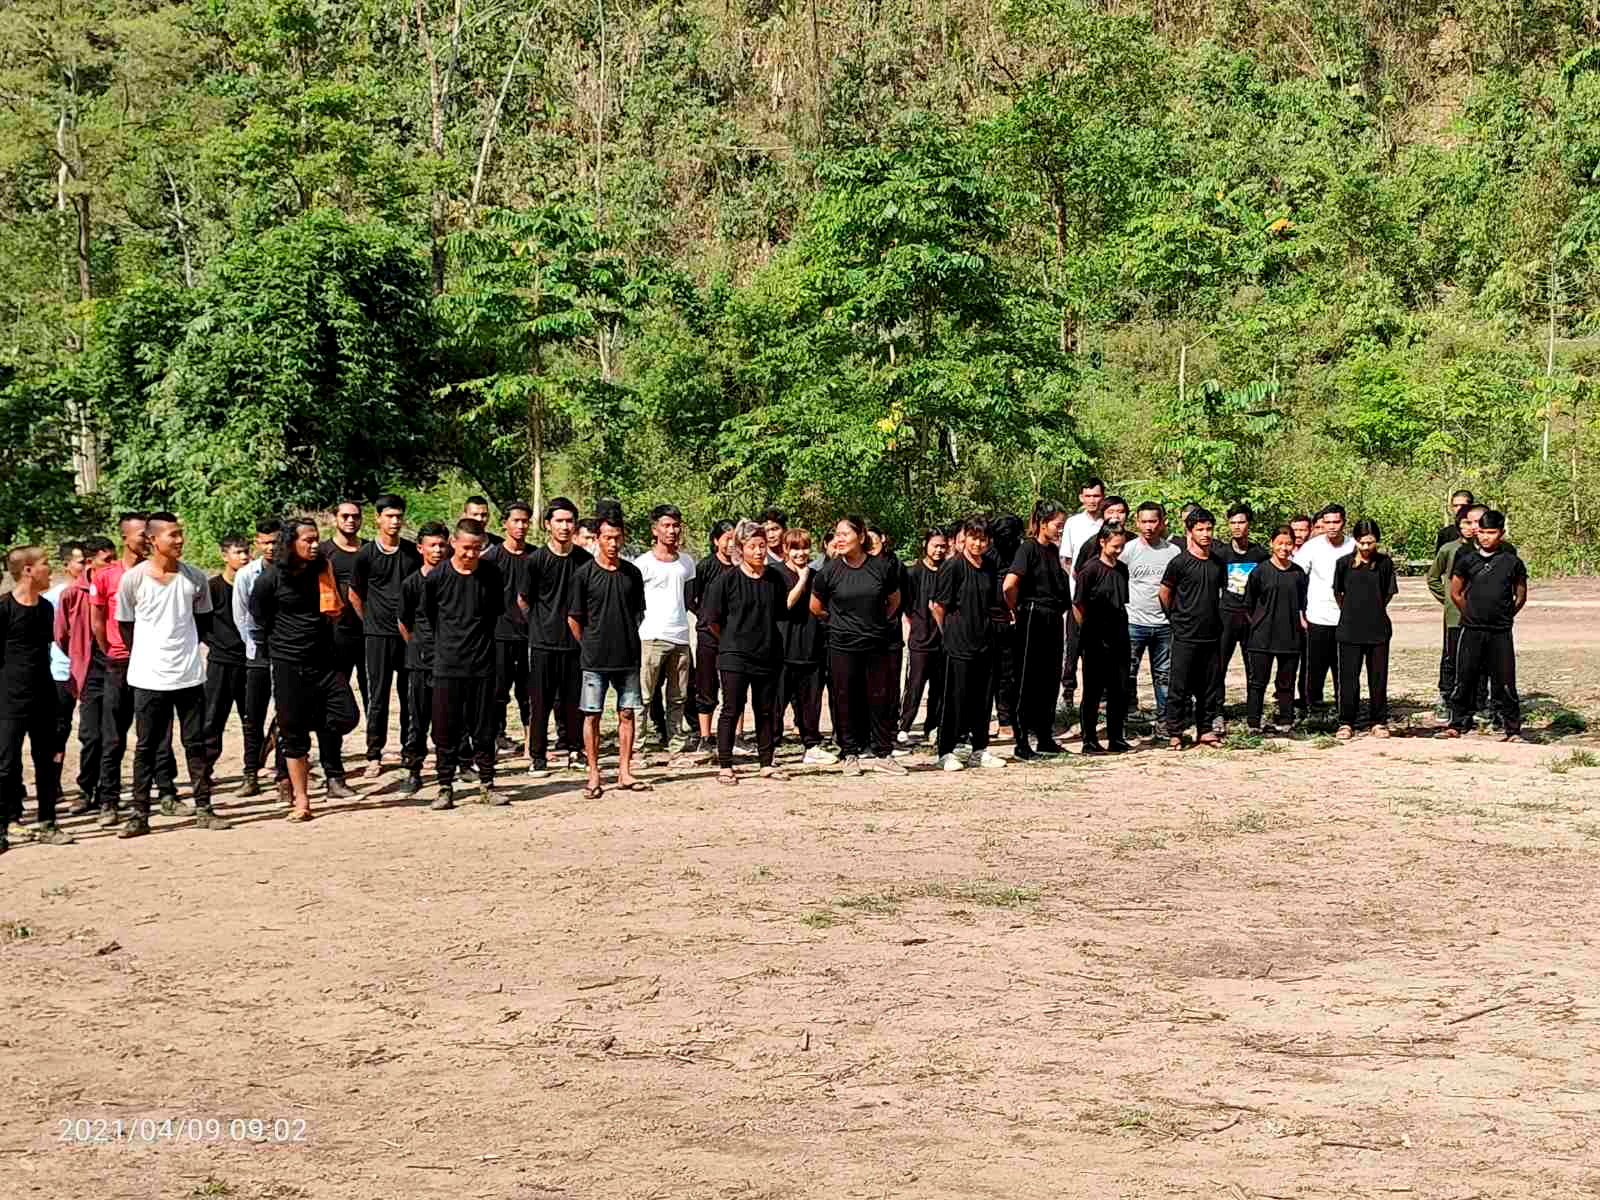 Protesters join militia members to attend a training led by Karen National Union (KNU), amid protests against the military coup, in Karen State, Myanmar April 9, 2021 in this picture obtained by Reuters on April 26, 2021. T